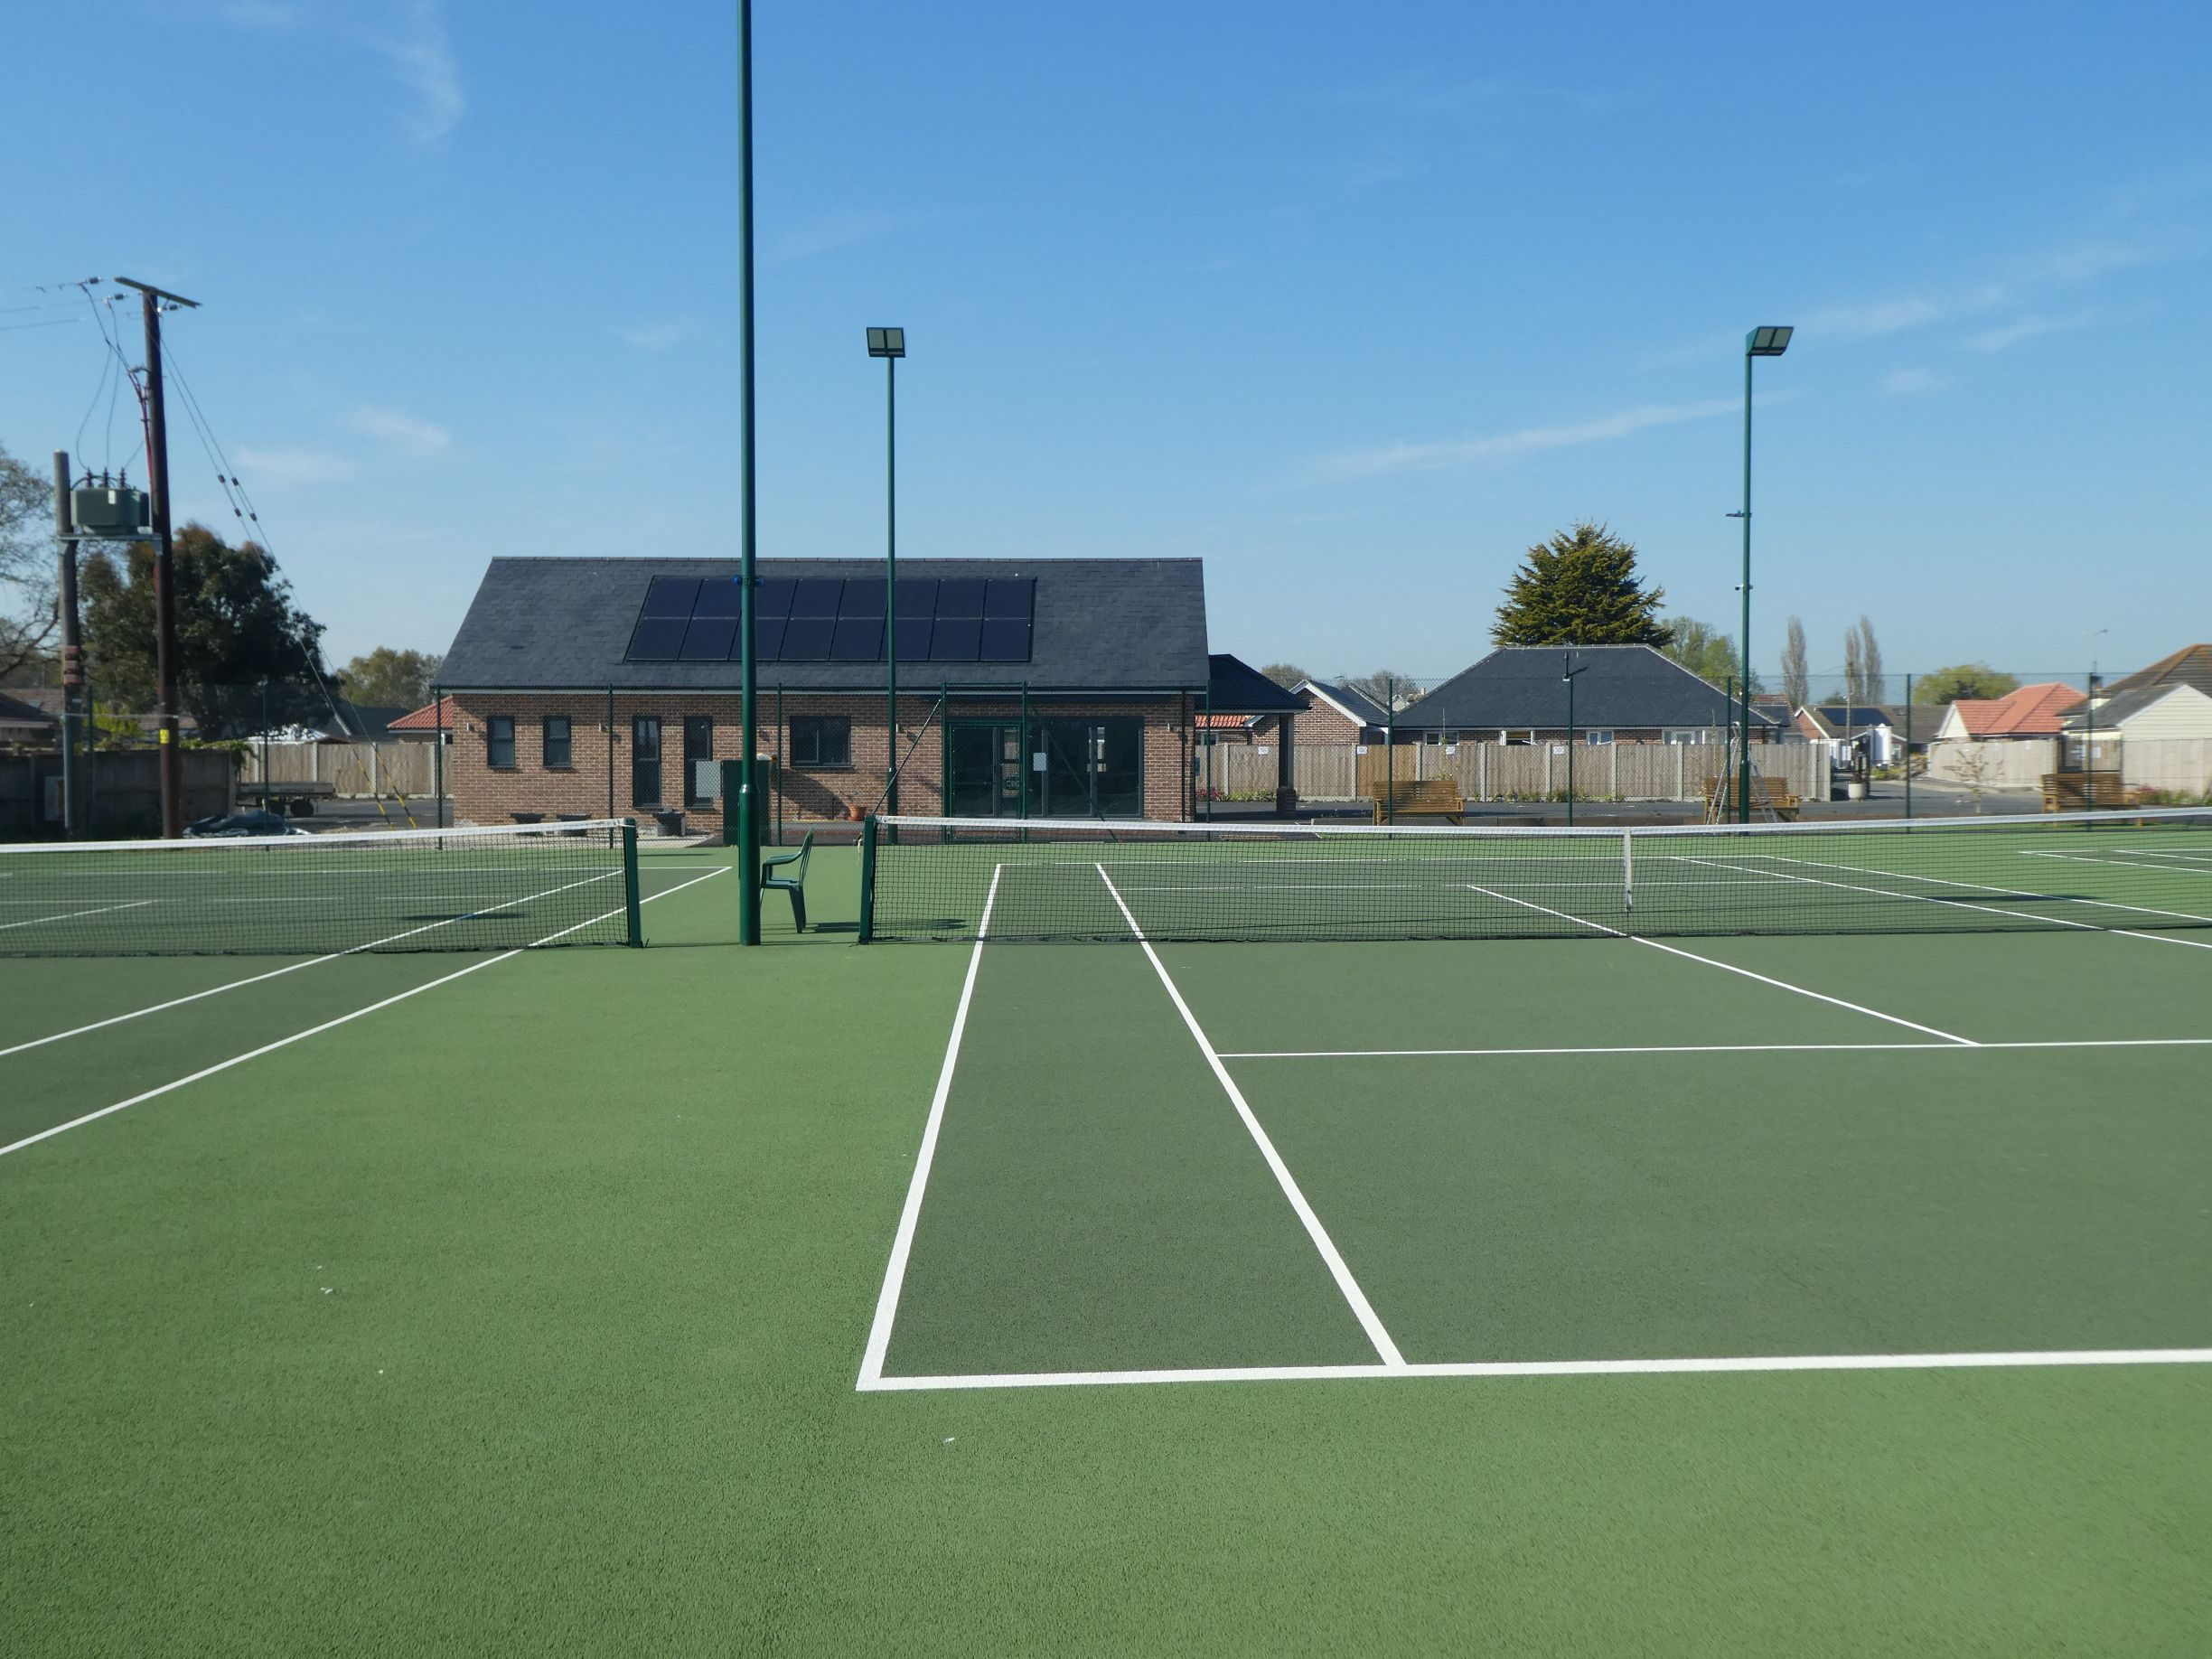 This complex upgrade programme for Little Clacton Tennis Club included four new courts, finished with eco-friendly tennis court floodlights